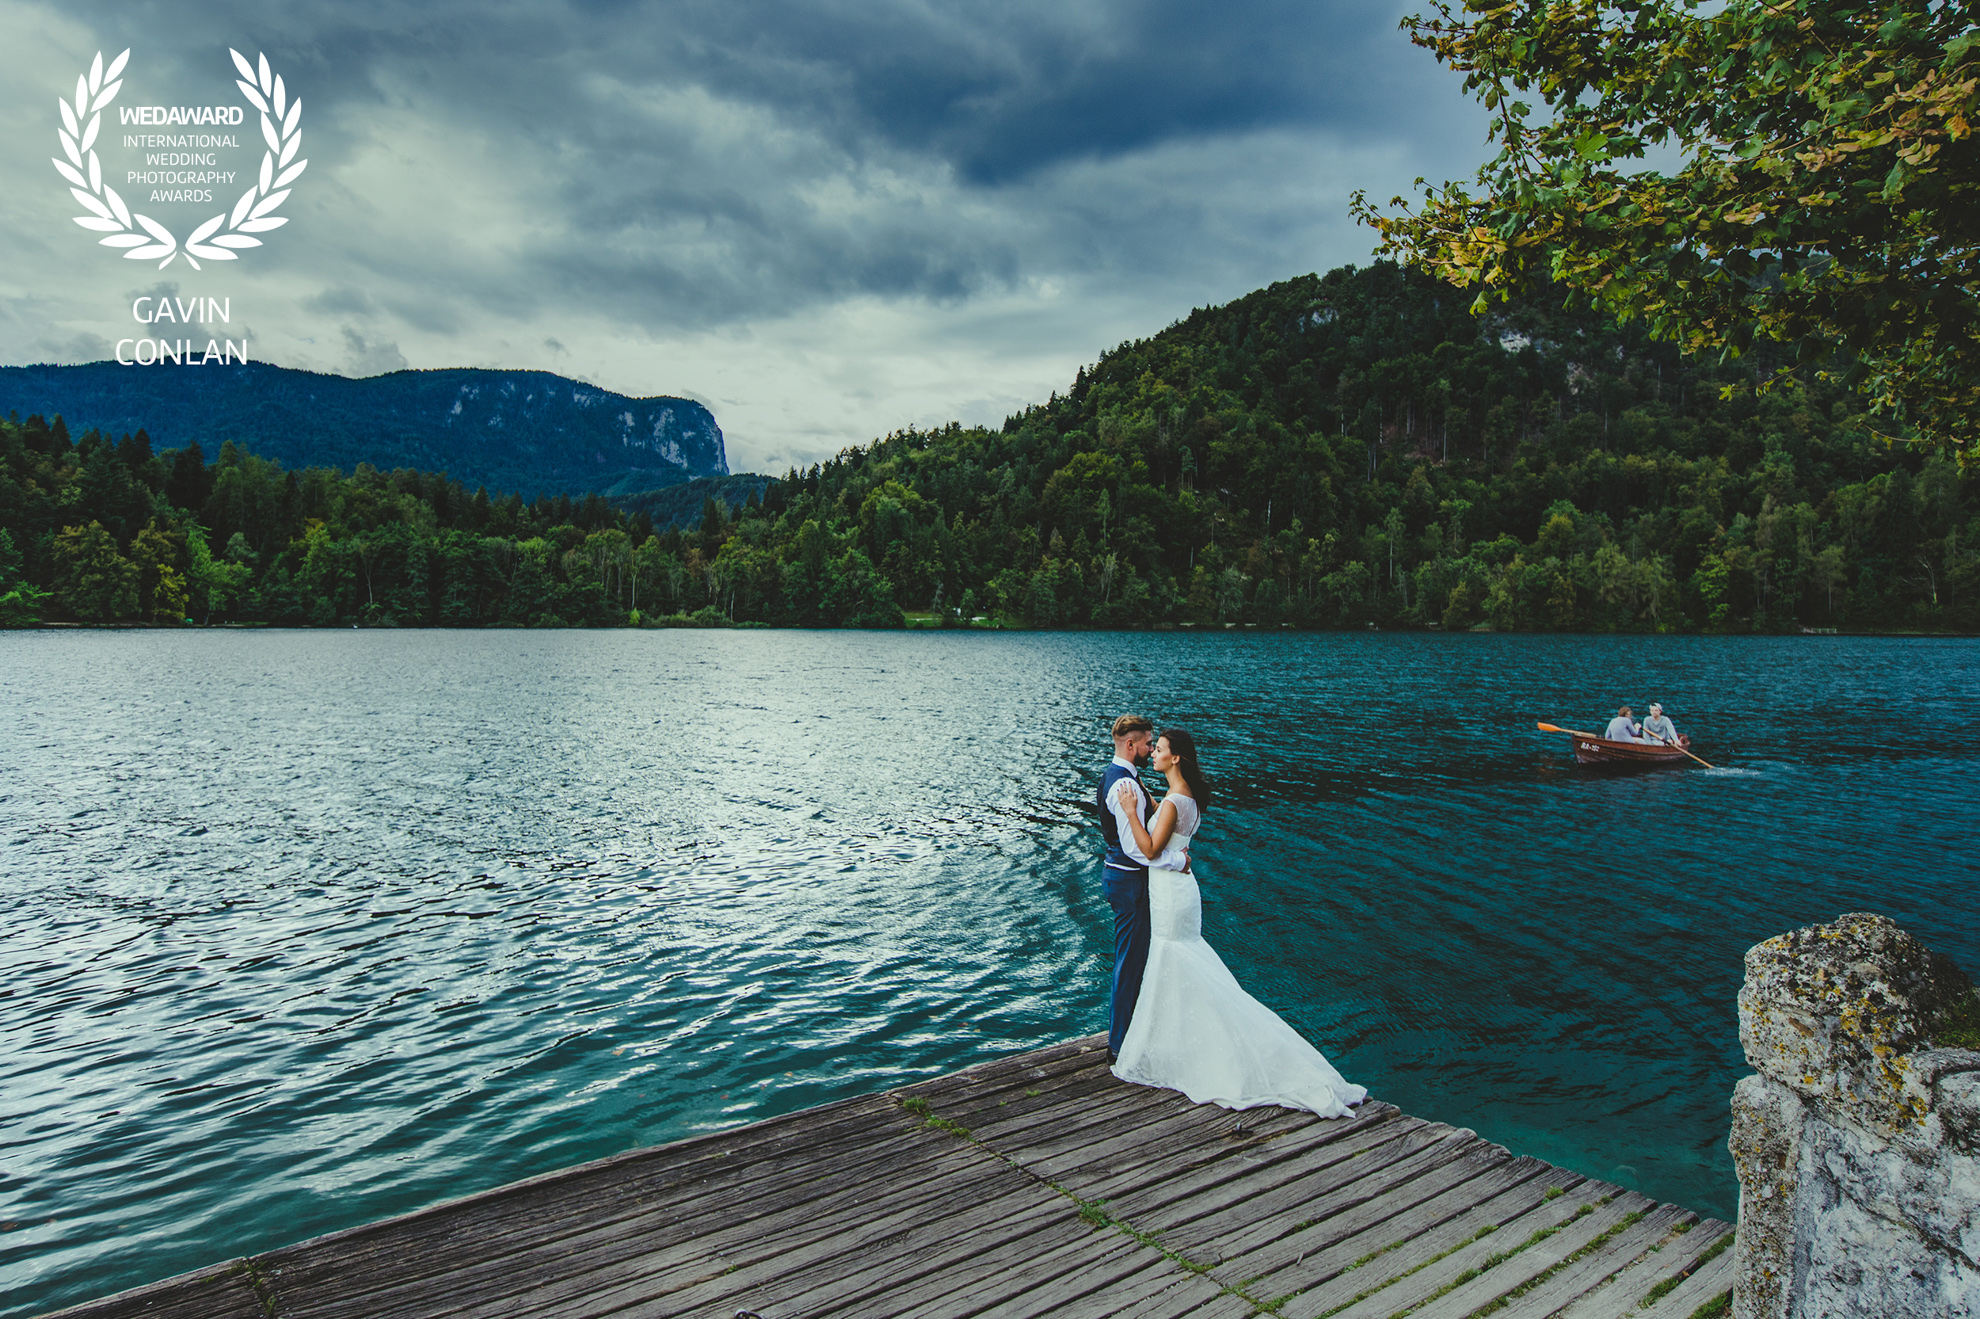 destination-wedding-portrait-lake-bled-bled-island-gavin-conlan-photography-wedaward